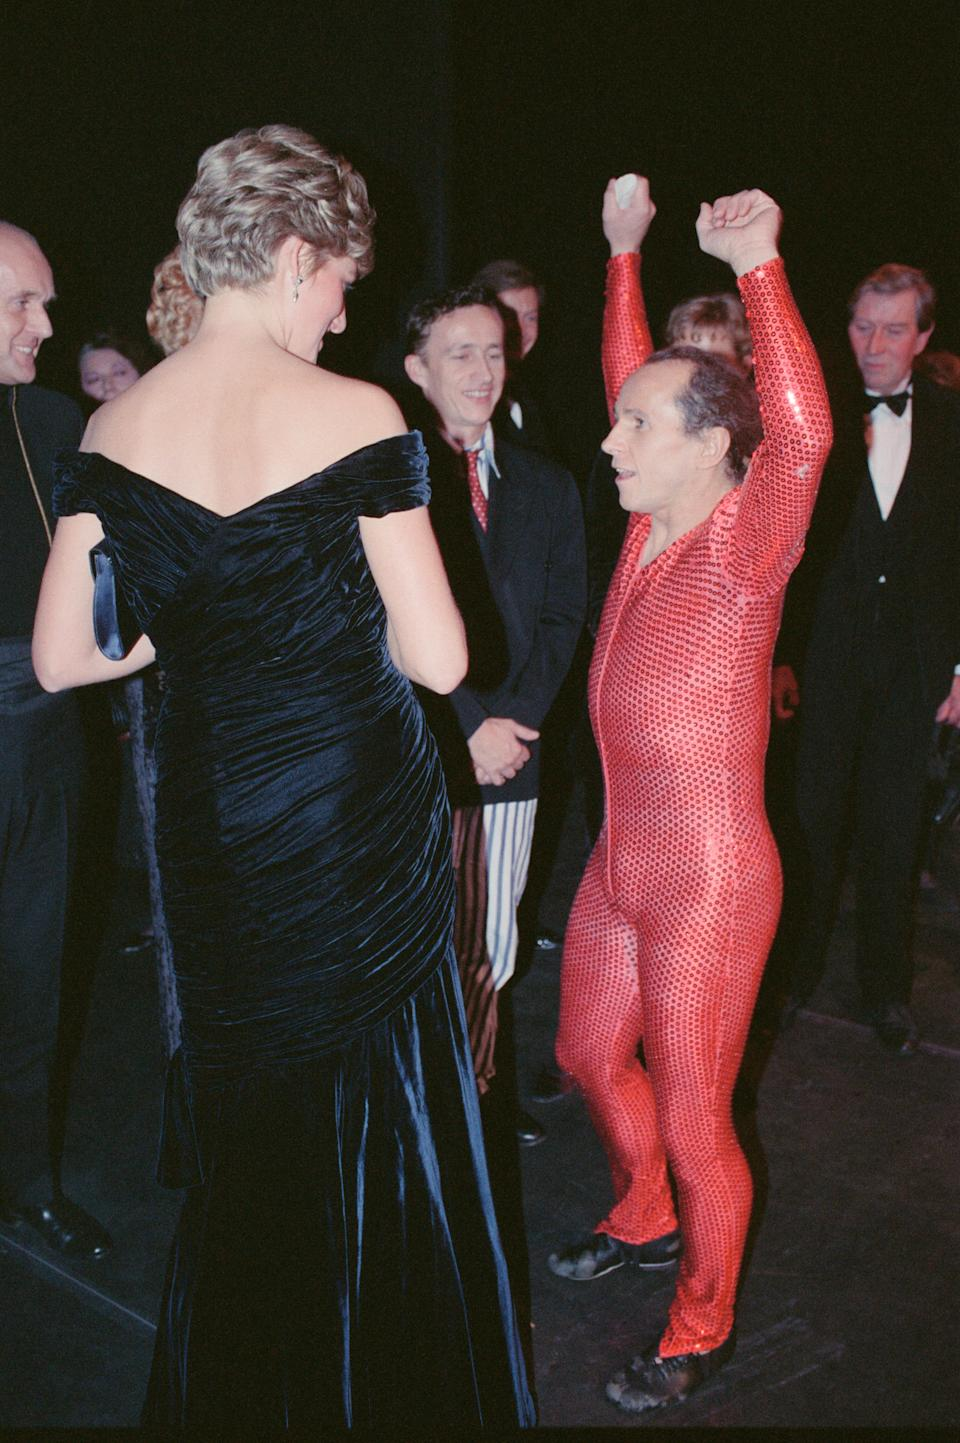 Princess Diana, Princess of Wales, attends Carnival of the Birds for the RSPB Charity, Royal Opera House, Covent Garden, London, Britain. Diana is introduced to the cast by dancer Wayne Sleep, who is dressed in the red leotard stage costume Picture taken 3rd November 1991. (Photo by Ken Lennnox/Mirrorpix/Getty Images)